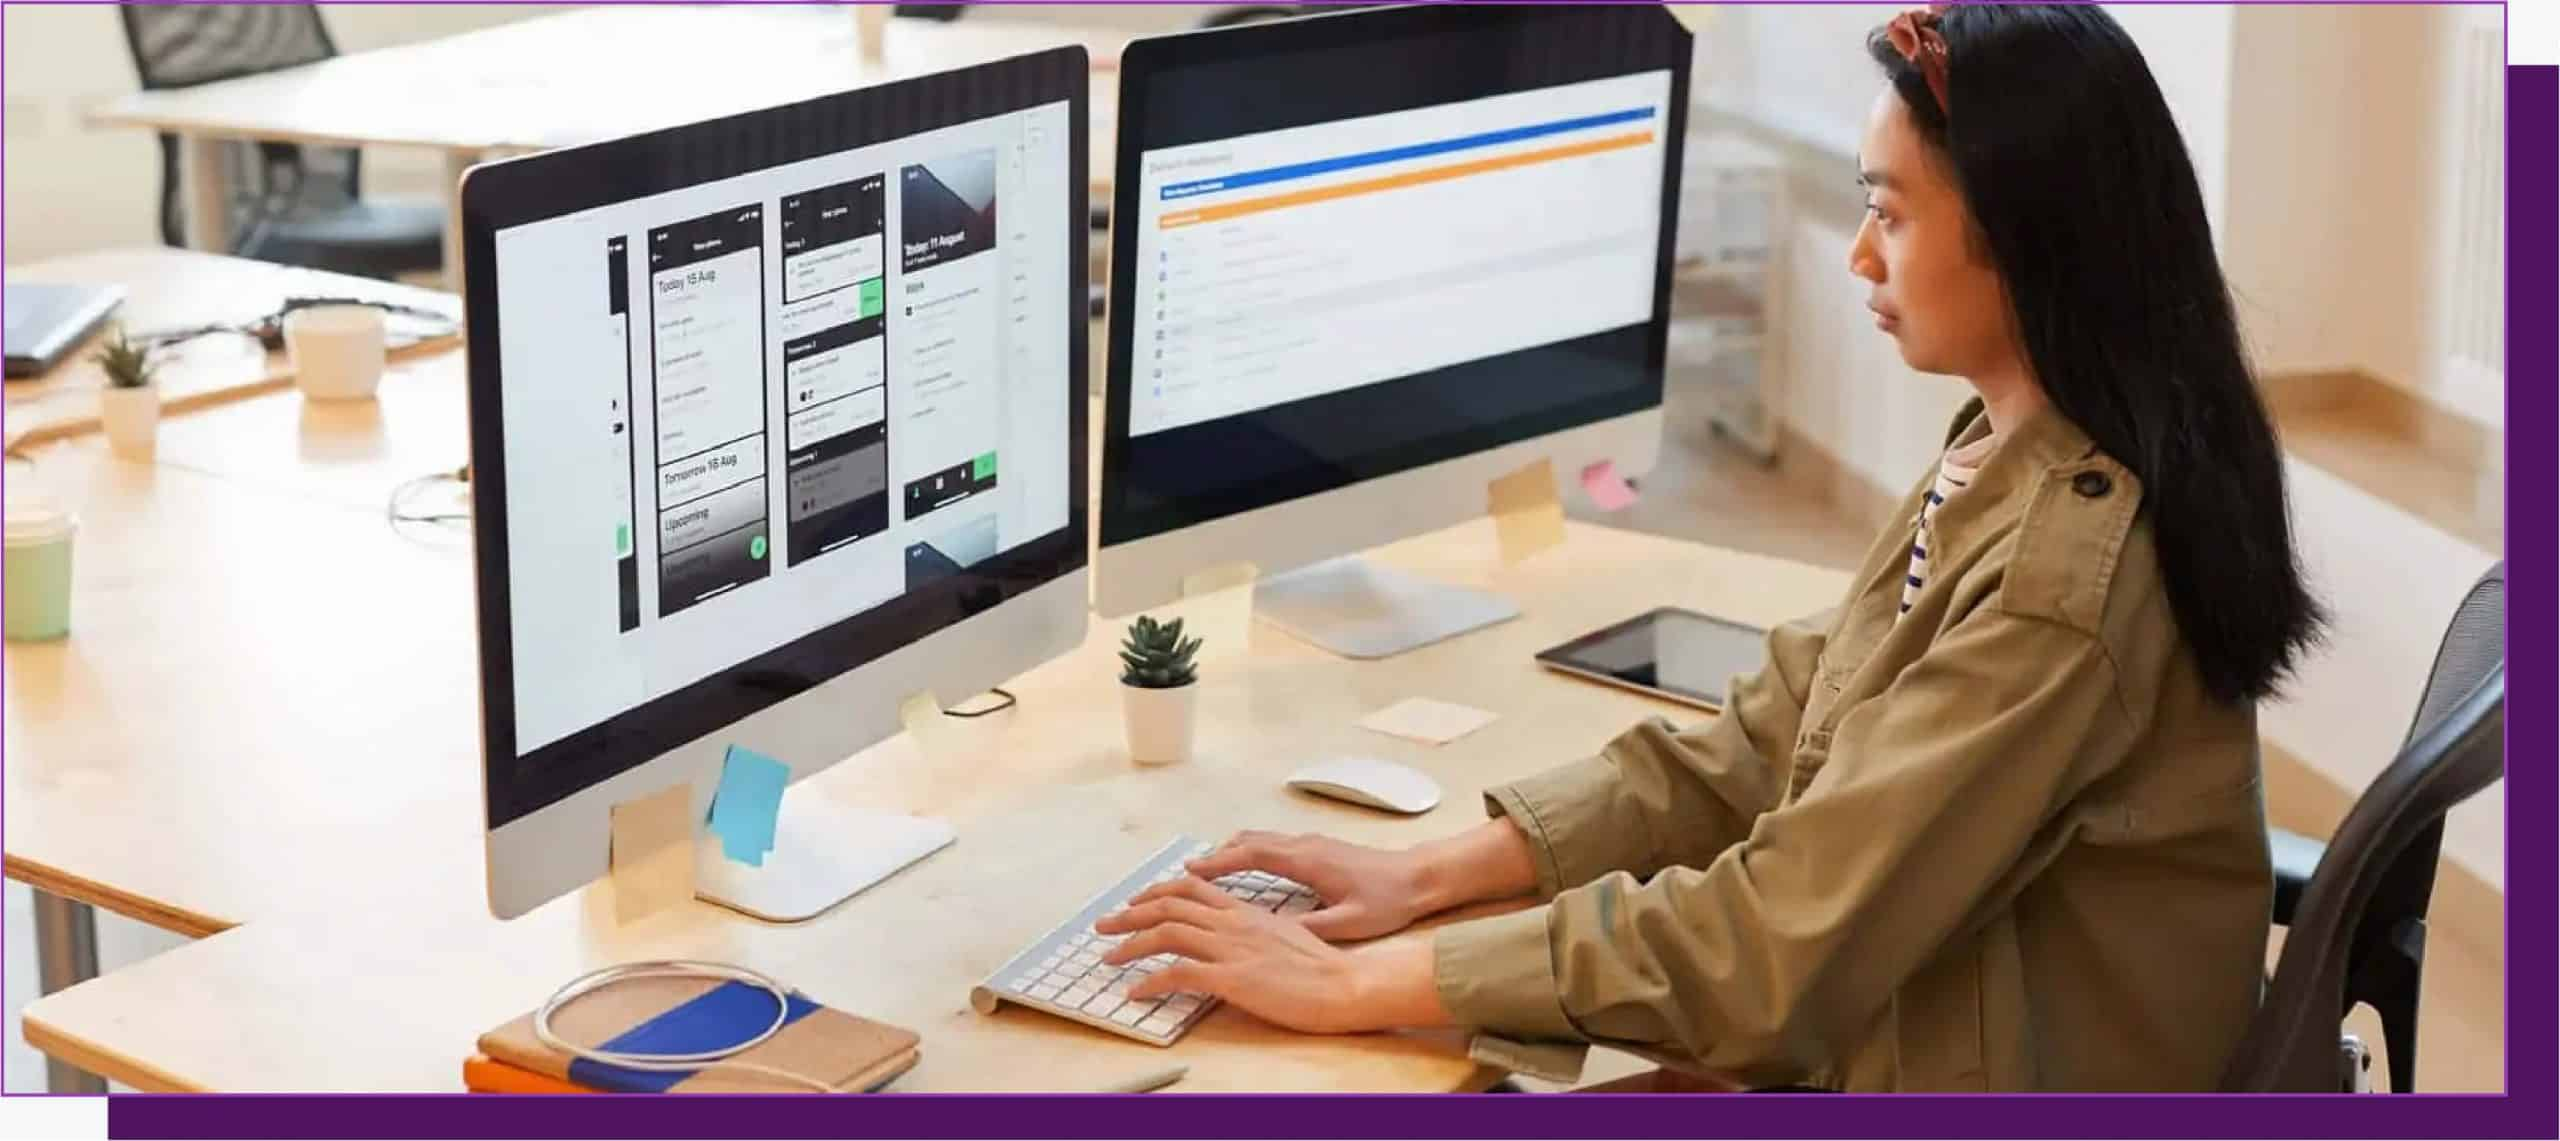 Woman typing on computer screen with designs on it